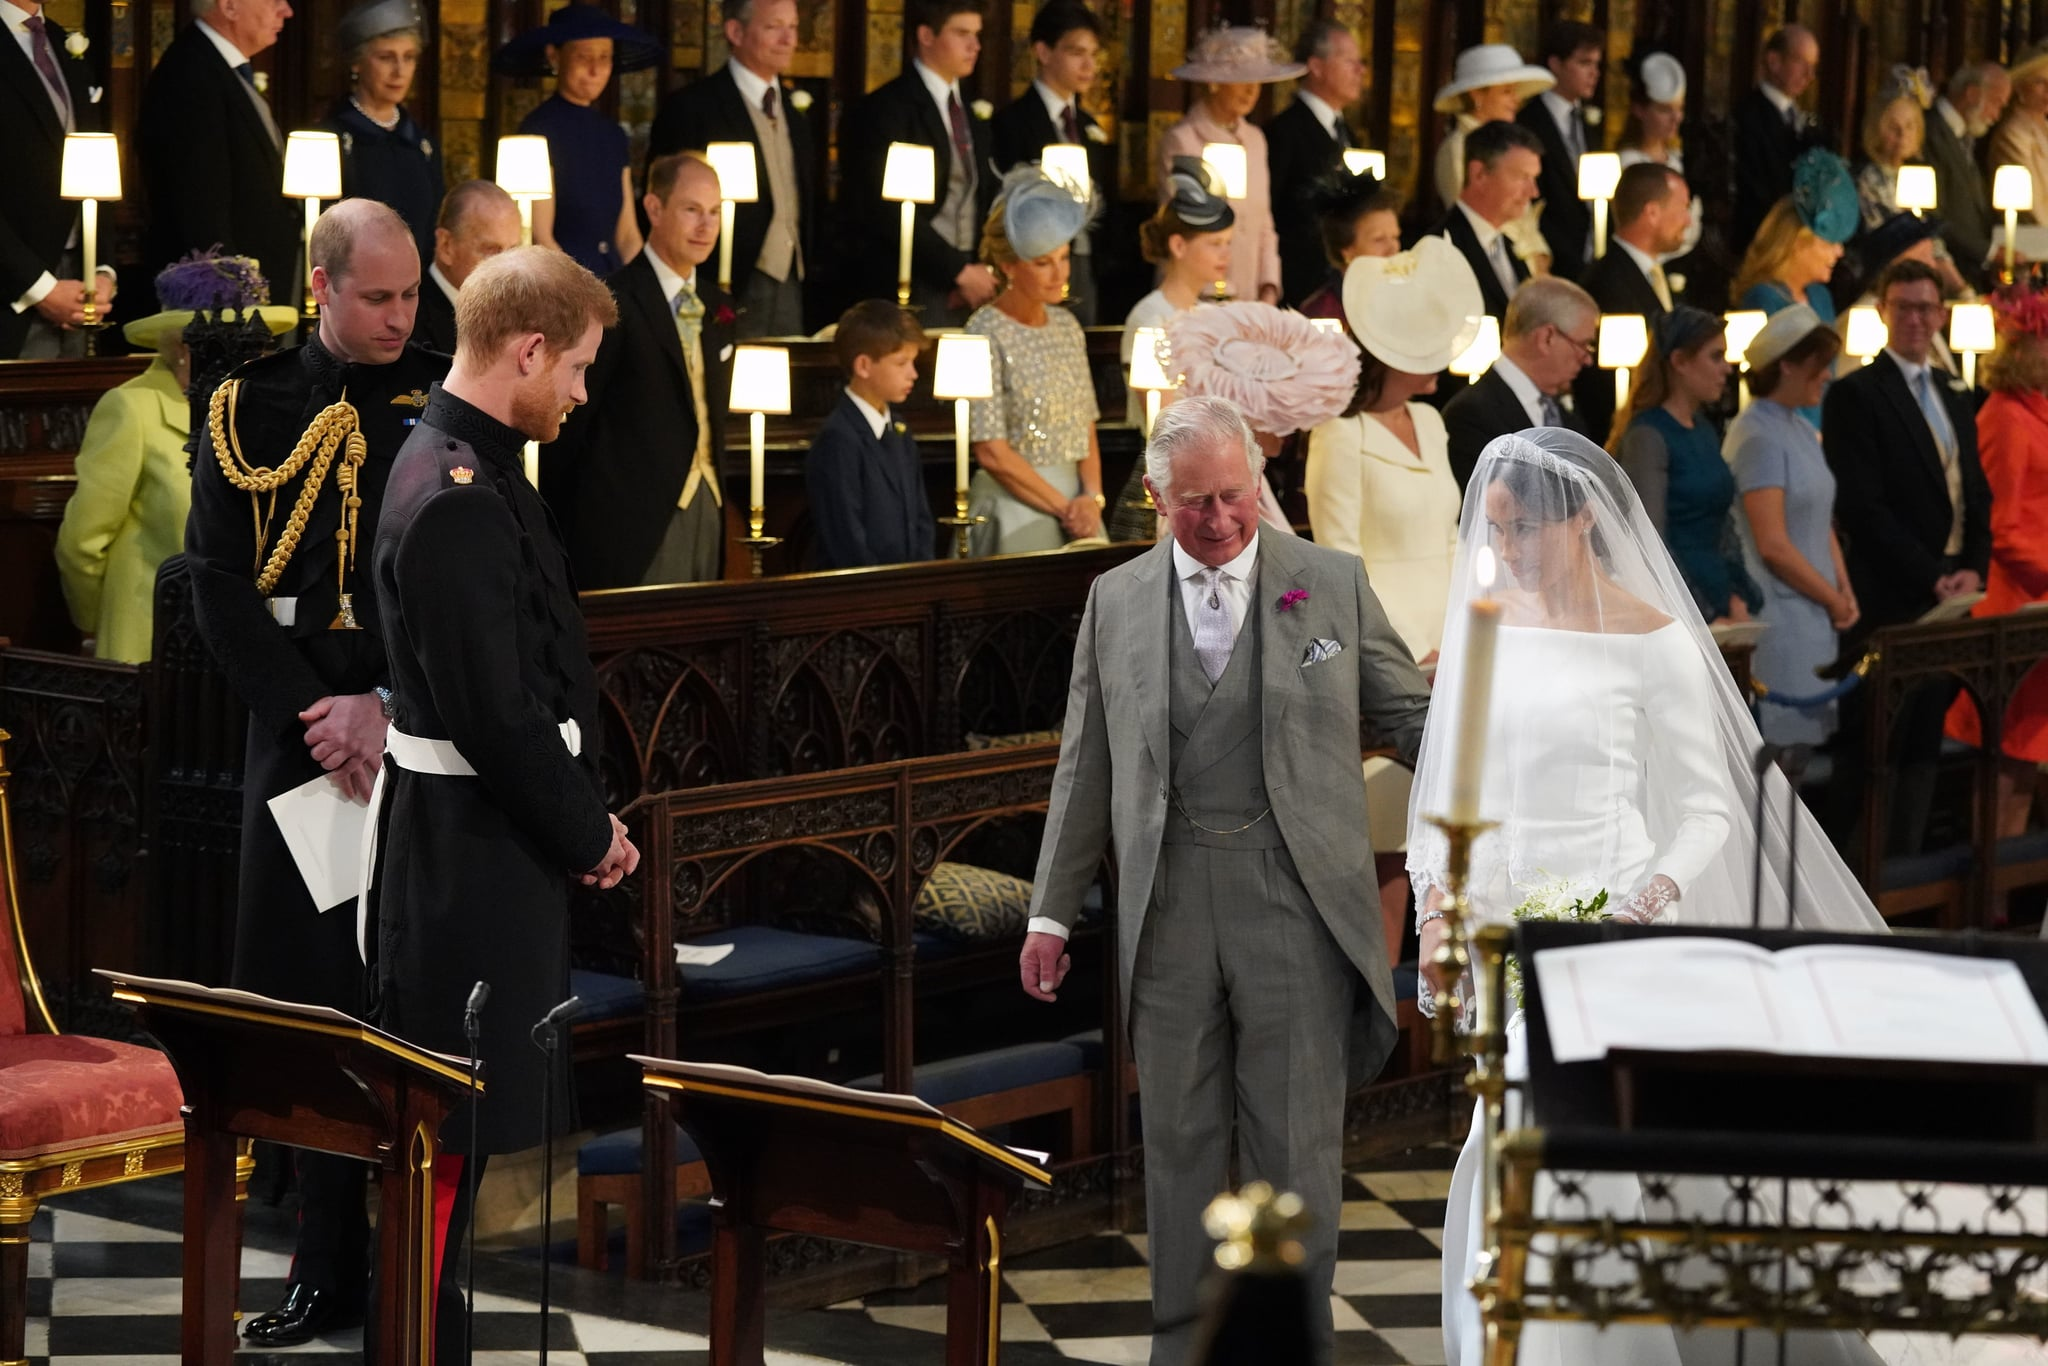 TOPSHOT - Britain's Prince Harry, Duke of Sussex (2nd L), looks at his bride, Meghan Markle, as she arrives accompanied by the Britain's Prince Charles, Prince of Wales in St George's Chapel during the wedding ceremony of Britain's Prince Harry, Duke of Sussex and US actress Meghan Markle in St George's Chapel, Windsor Castle, in Windsor, on May 19, 2018. (Photo by Jonathan Brady / POOL / AFP)        (Photo credit should read JONATHAN BRADY/AFP/Getty Images)